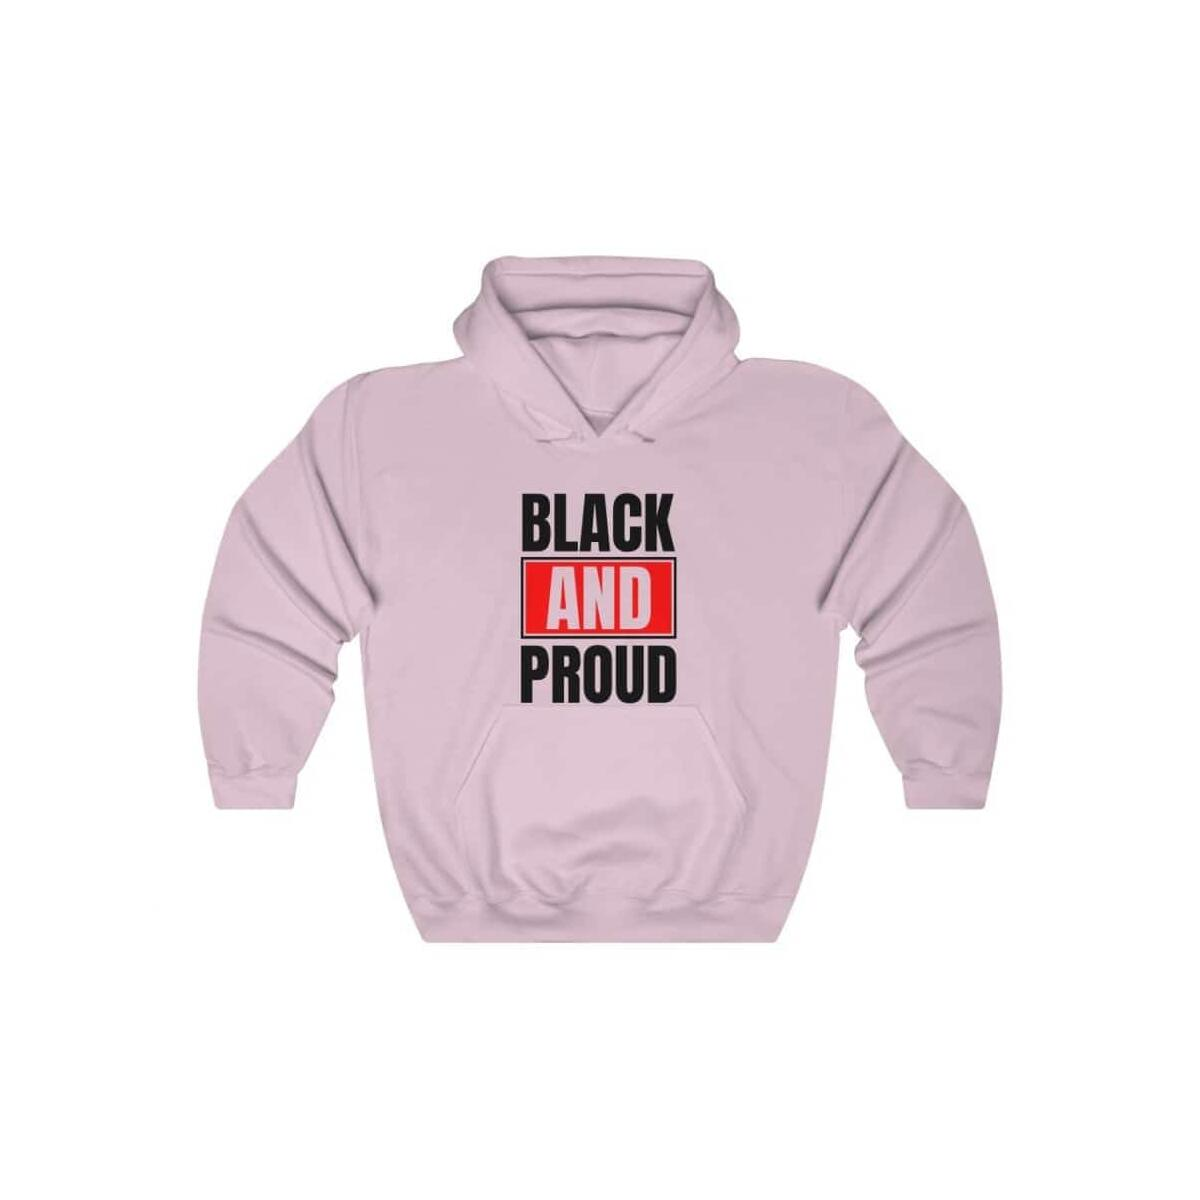 Afrocentric BLACK AND PROUD Hooded Sweatshirt, Light Pink / XL